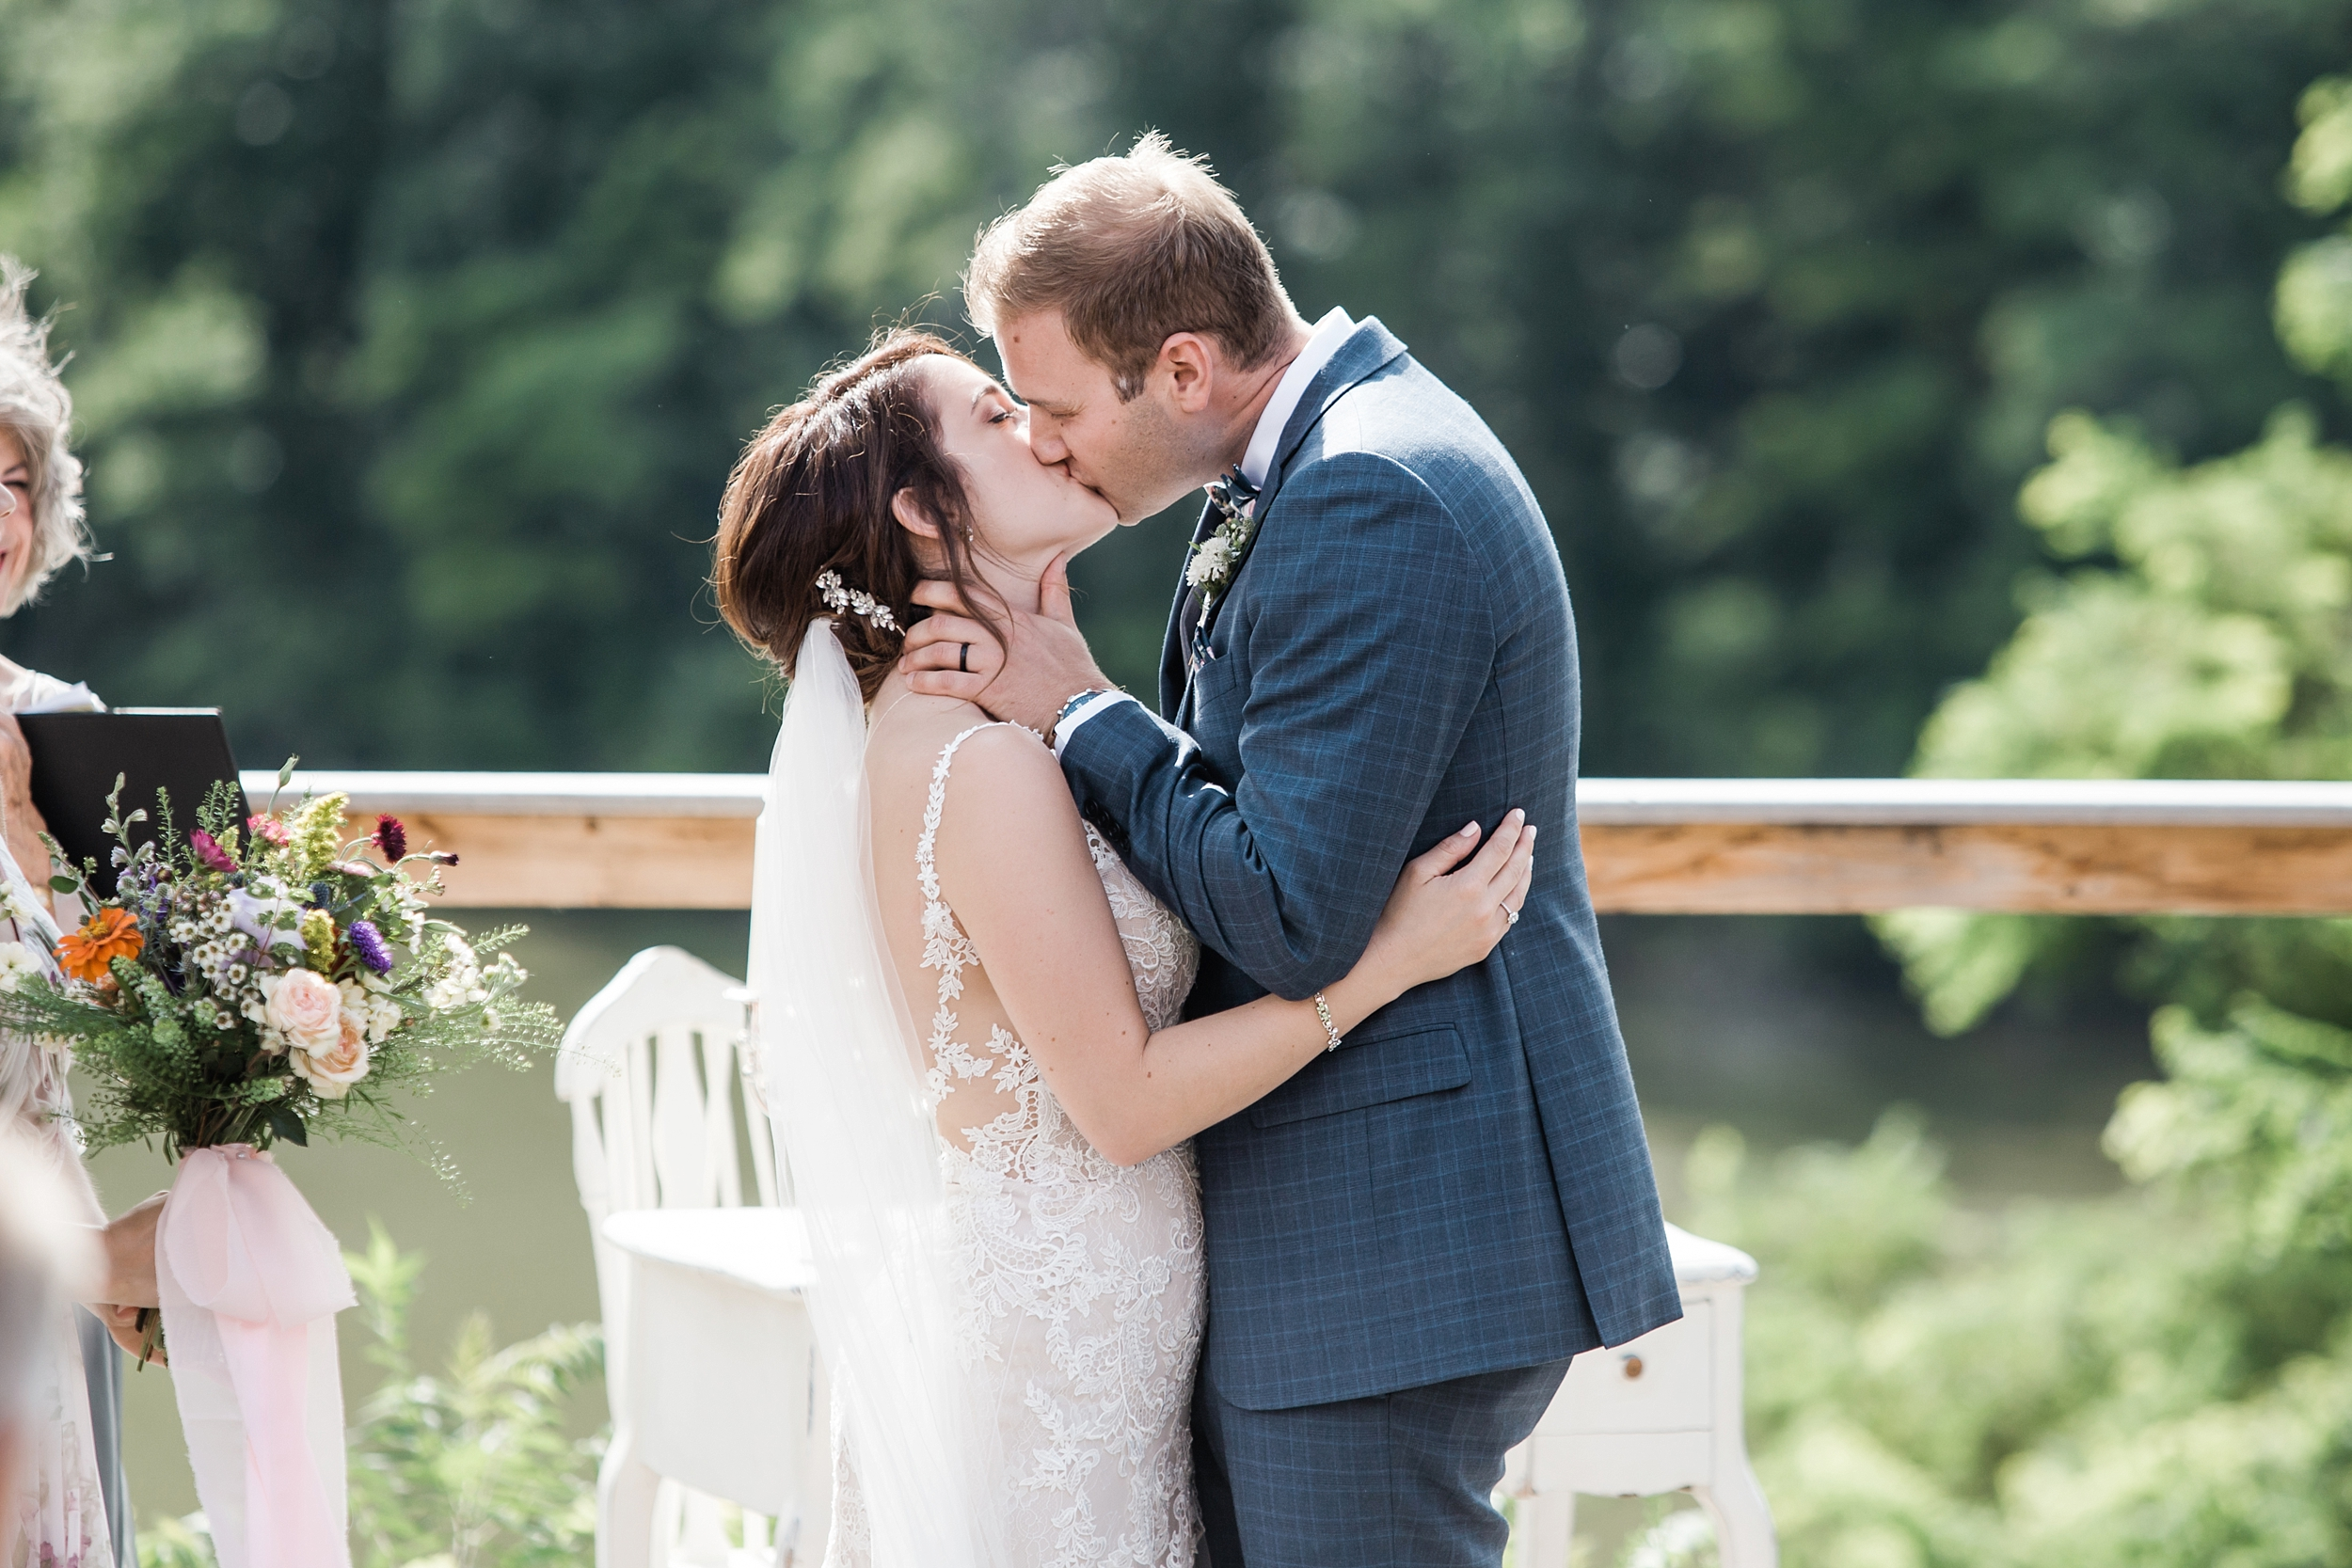 stonewallestates-weddingphotography_0024.jpg